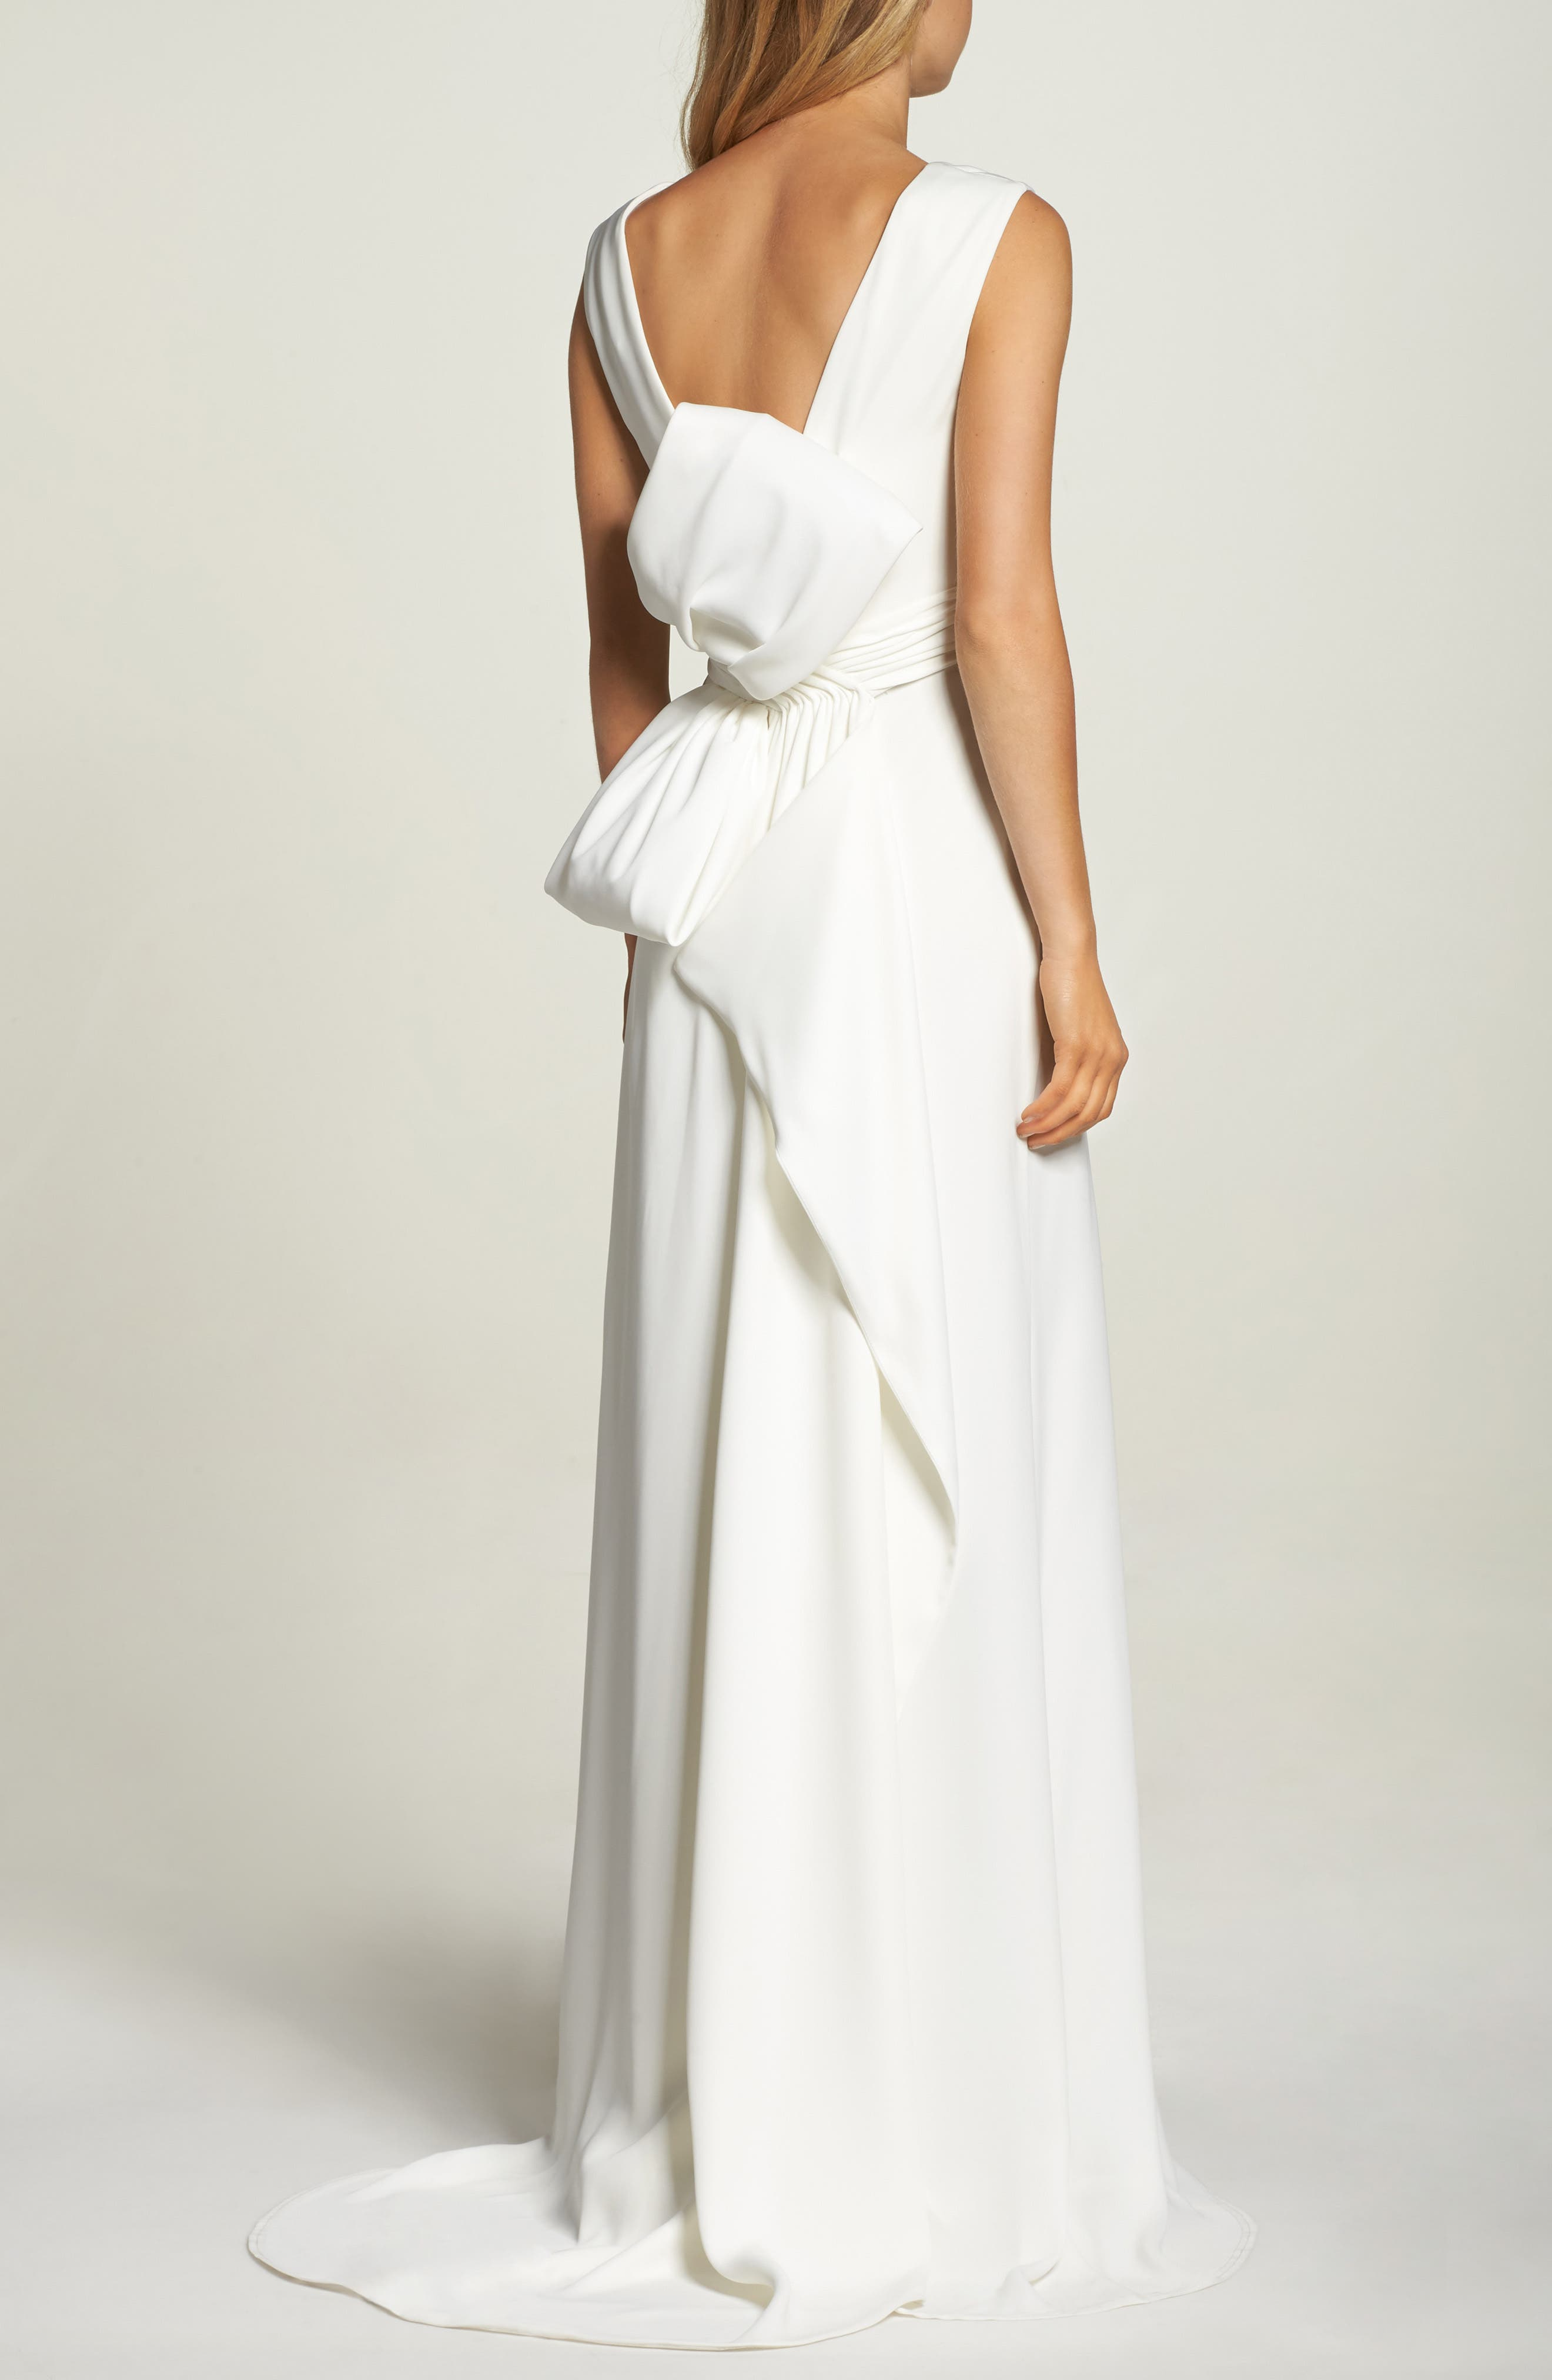 Statement Bow Crepe Gown,                             Alternate thumbnail 2, color,                             Ivory